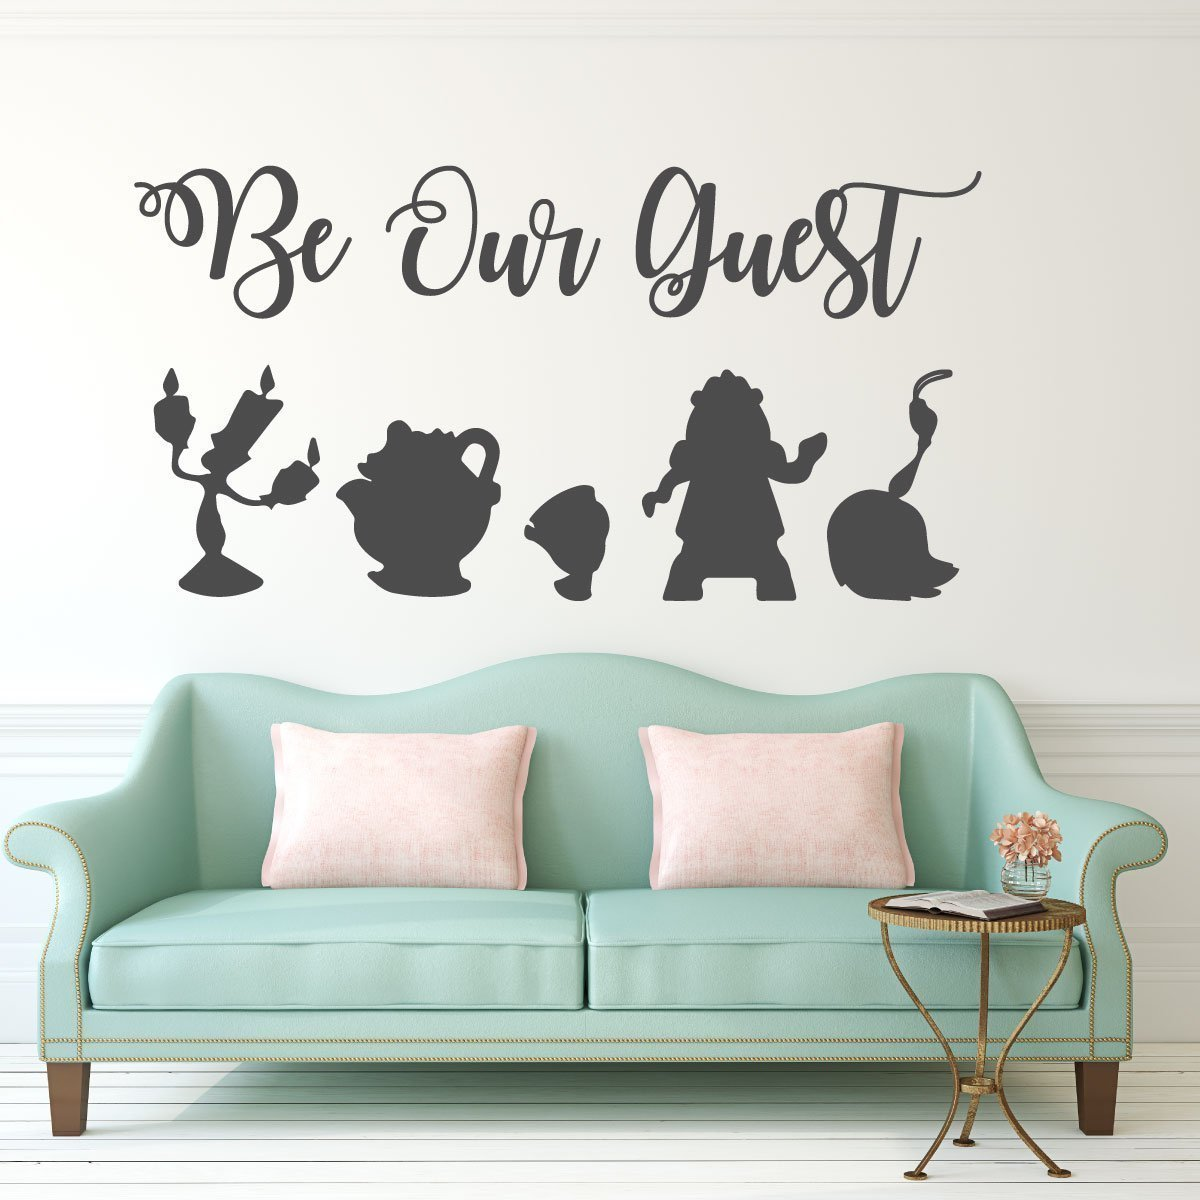 Be Our Guest Wall Decal - Beauty and the Beast - Lumiere, Mrs Potts, Chip, Cogsworth And Featherduster